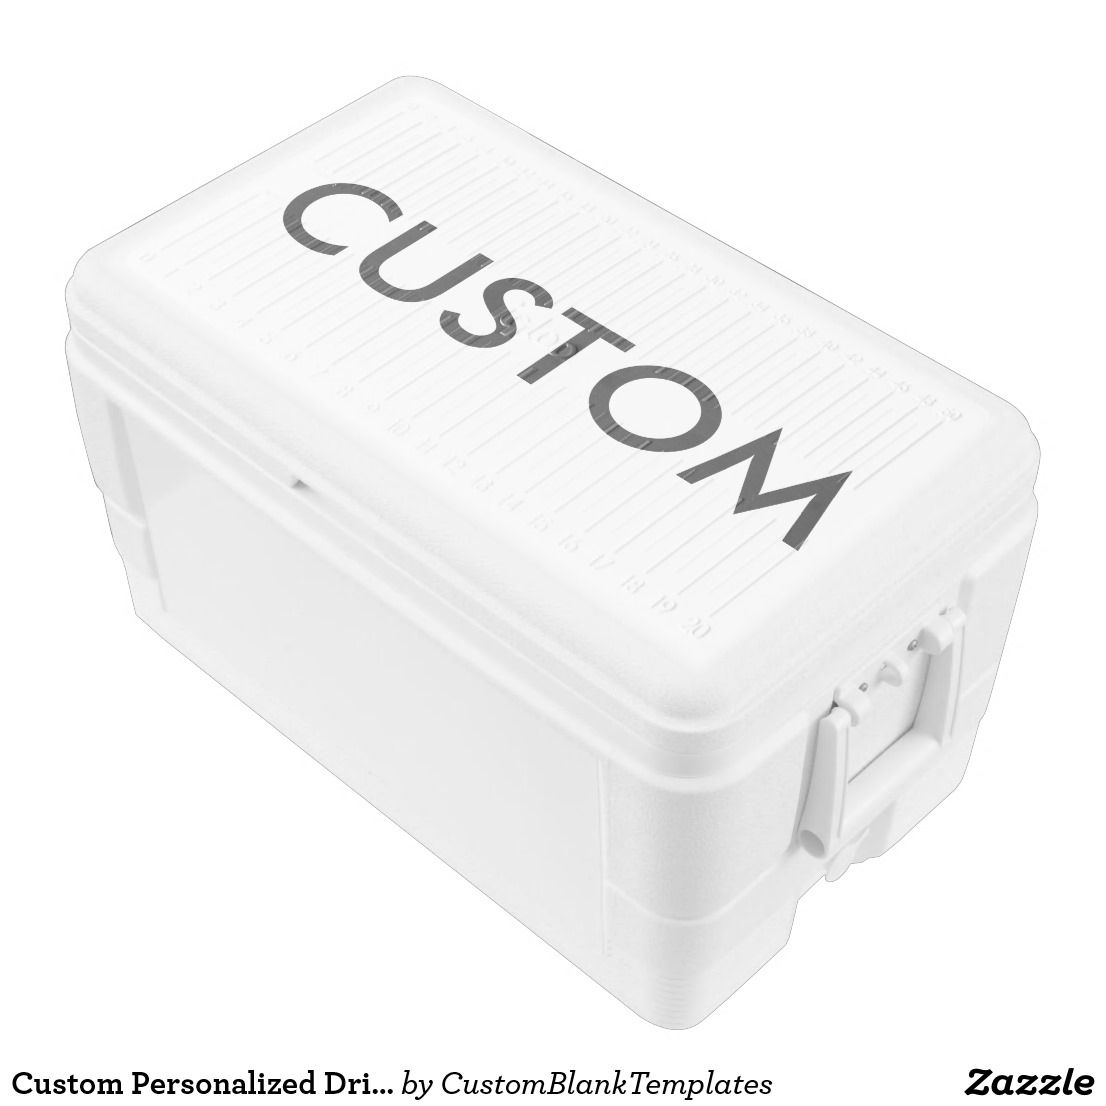 Personalized Drink Cooler Blank Template